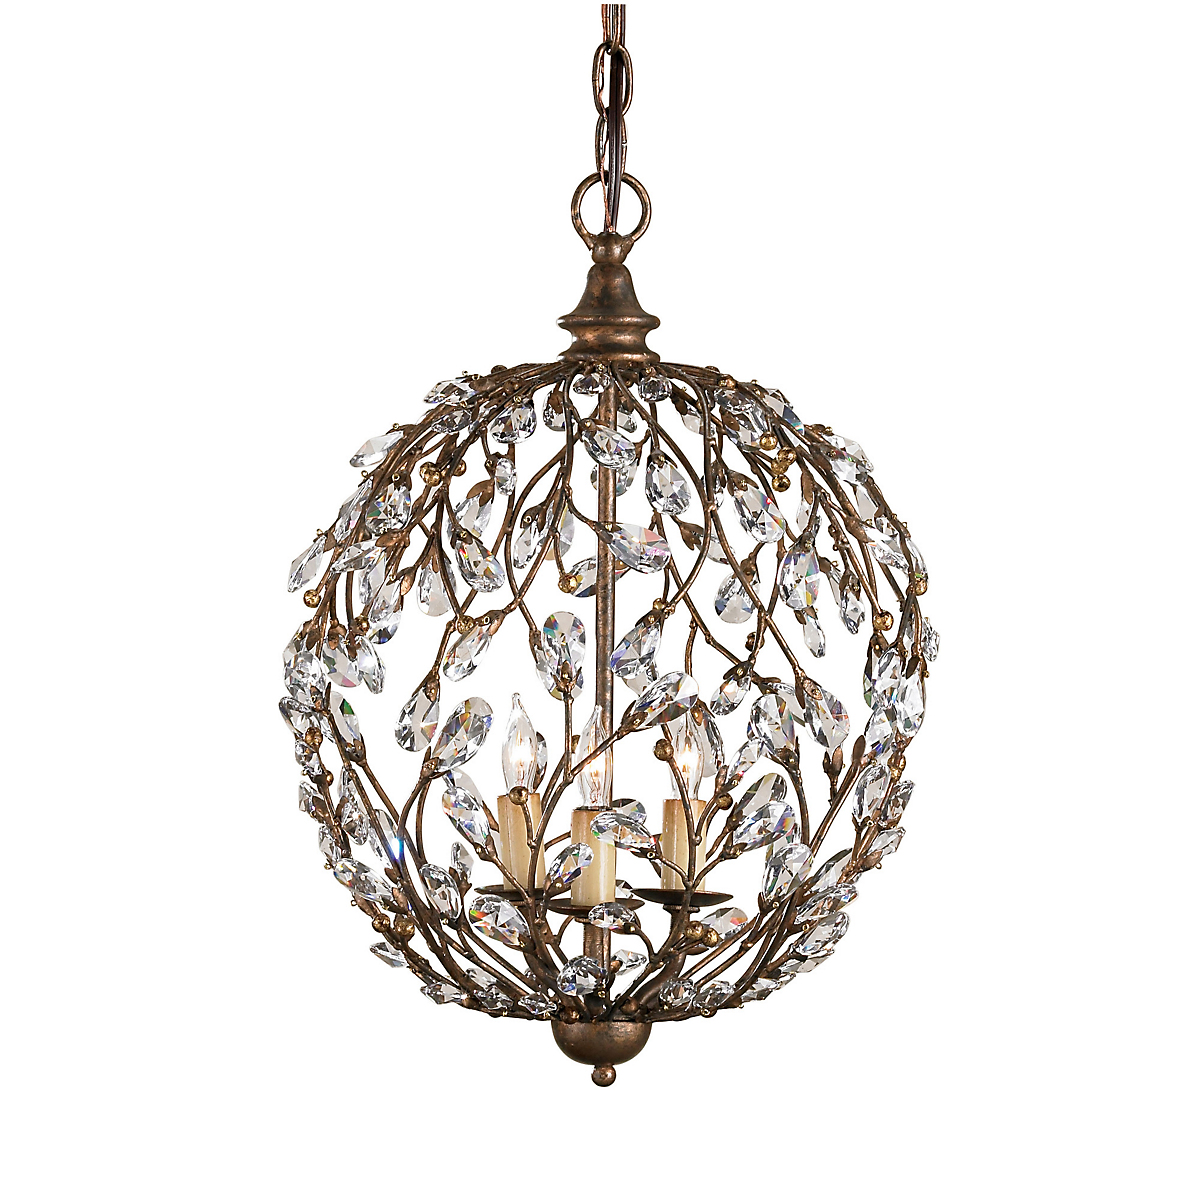 Currey & Company Crystal Bud Sphere Chandelier